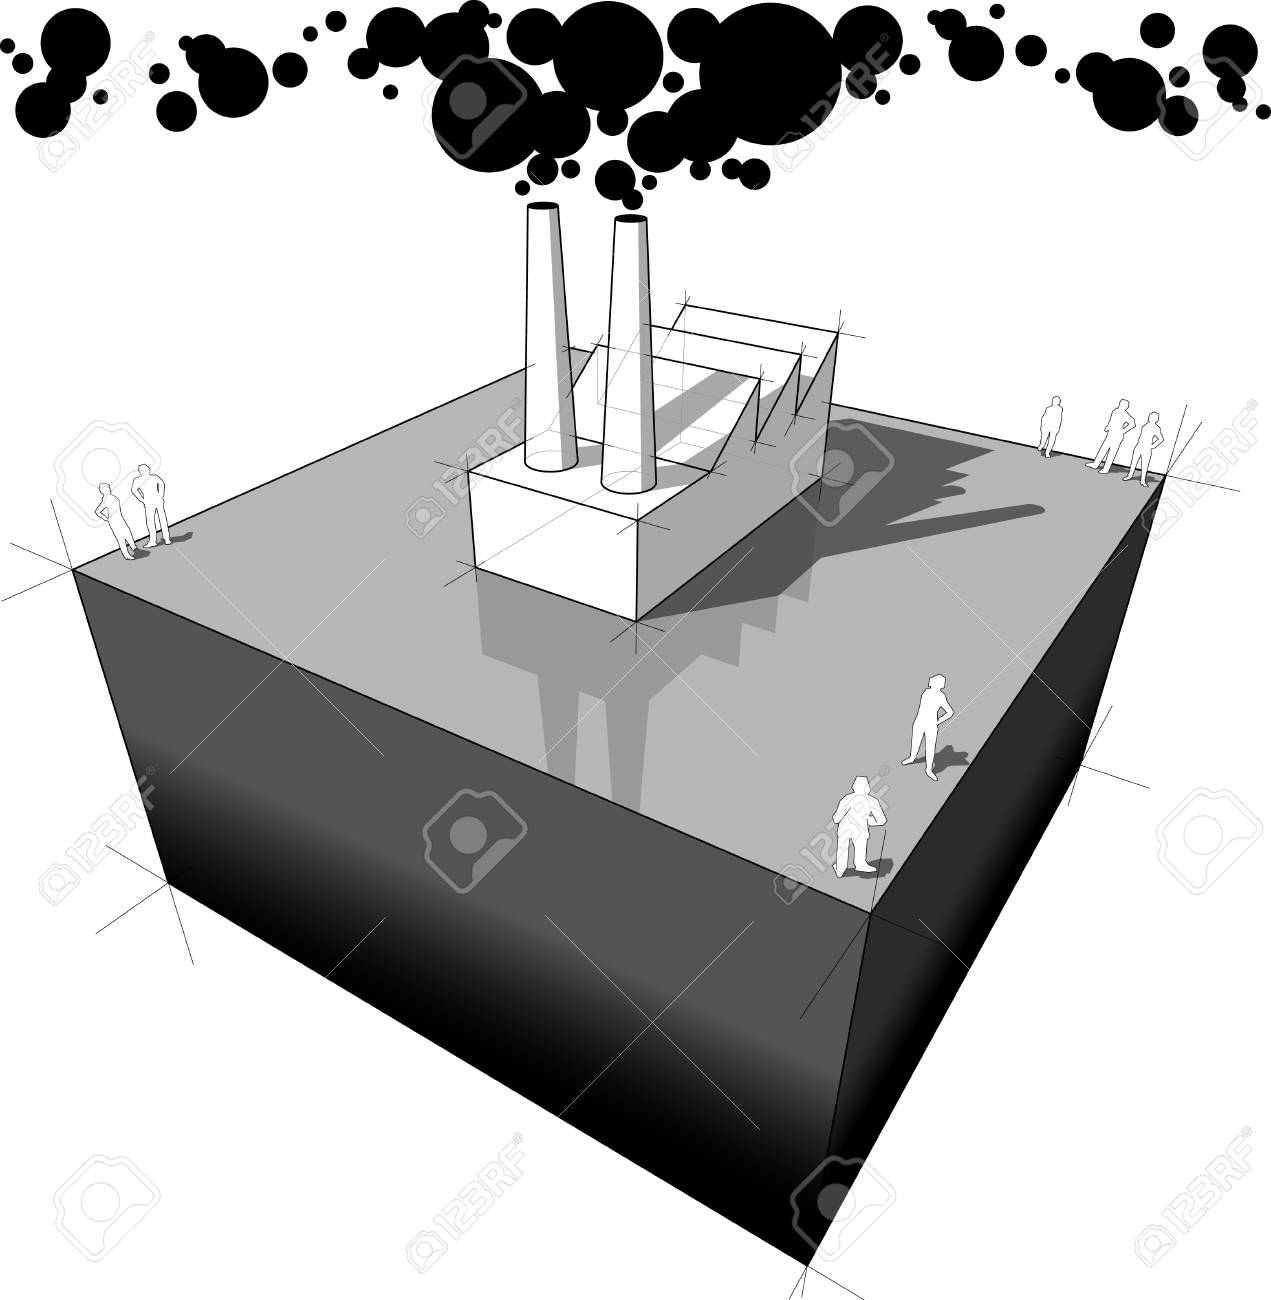 Industrial building/factory polluting air from its smokestacks Stock Vector - 9930047